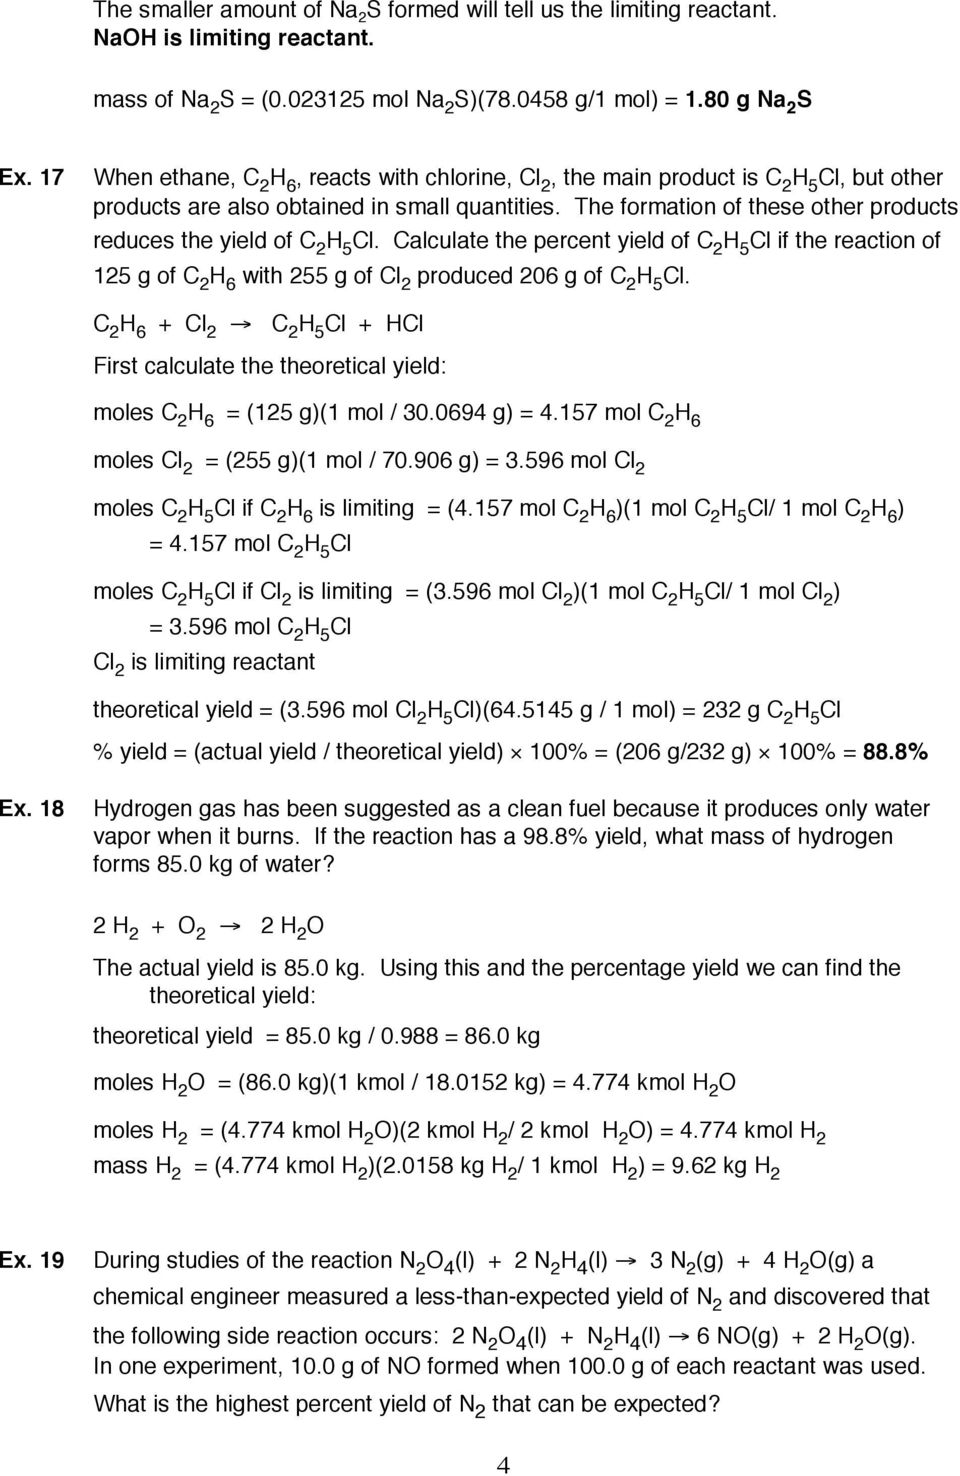 Stoichiometry Worksheet With Answers Pdf Best Free Fillable Forms